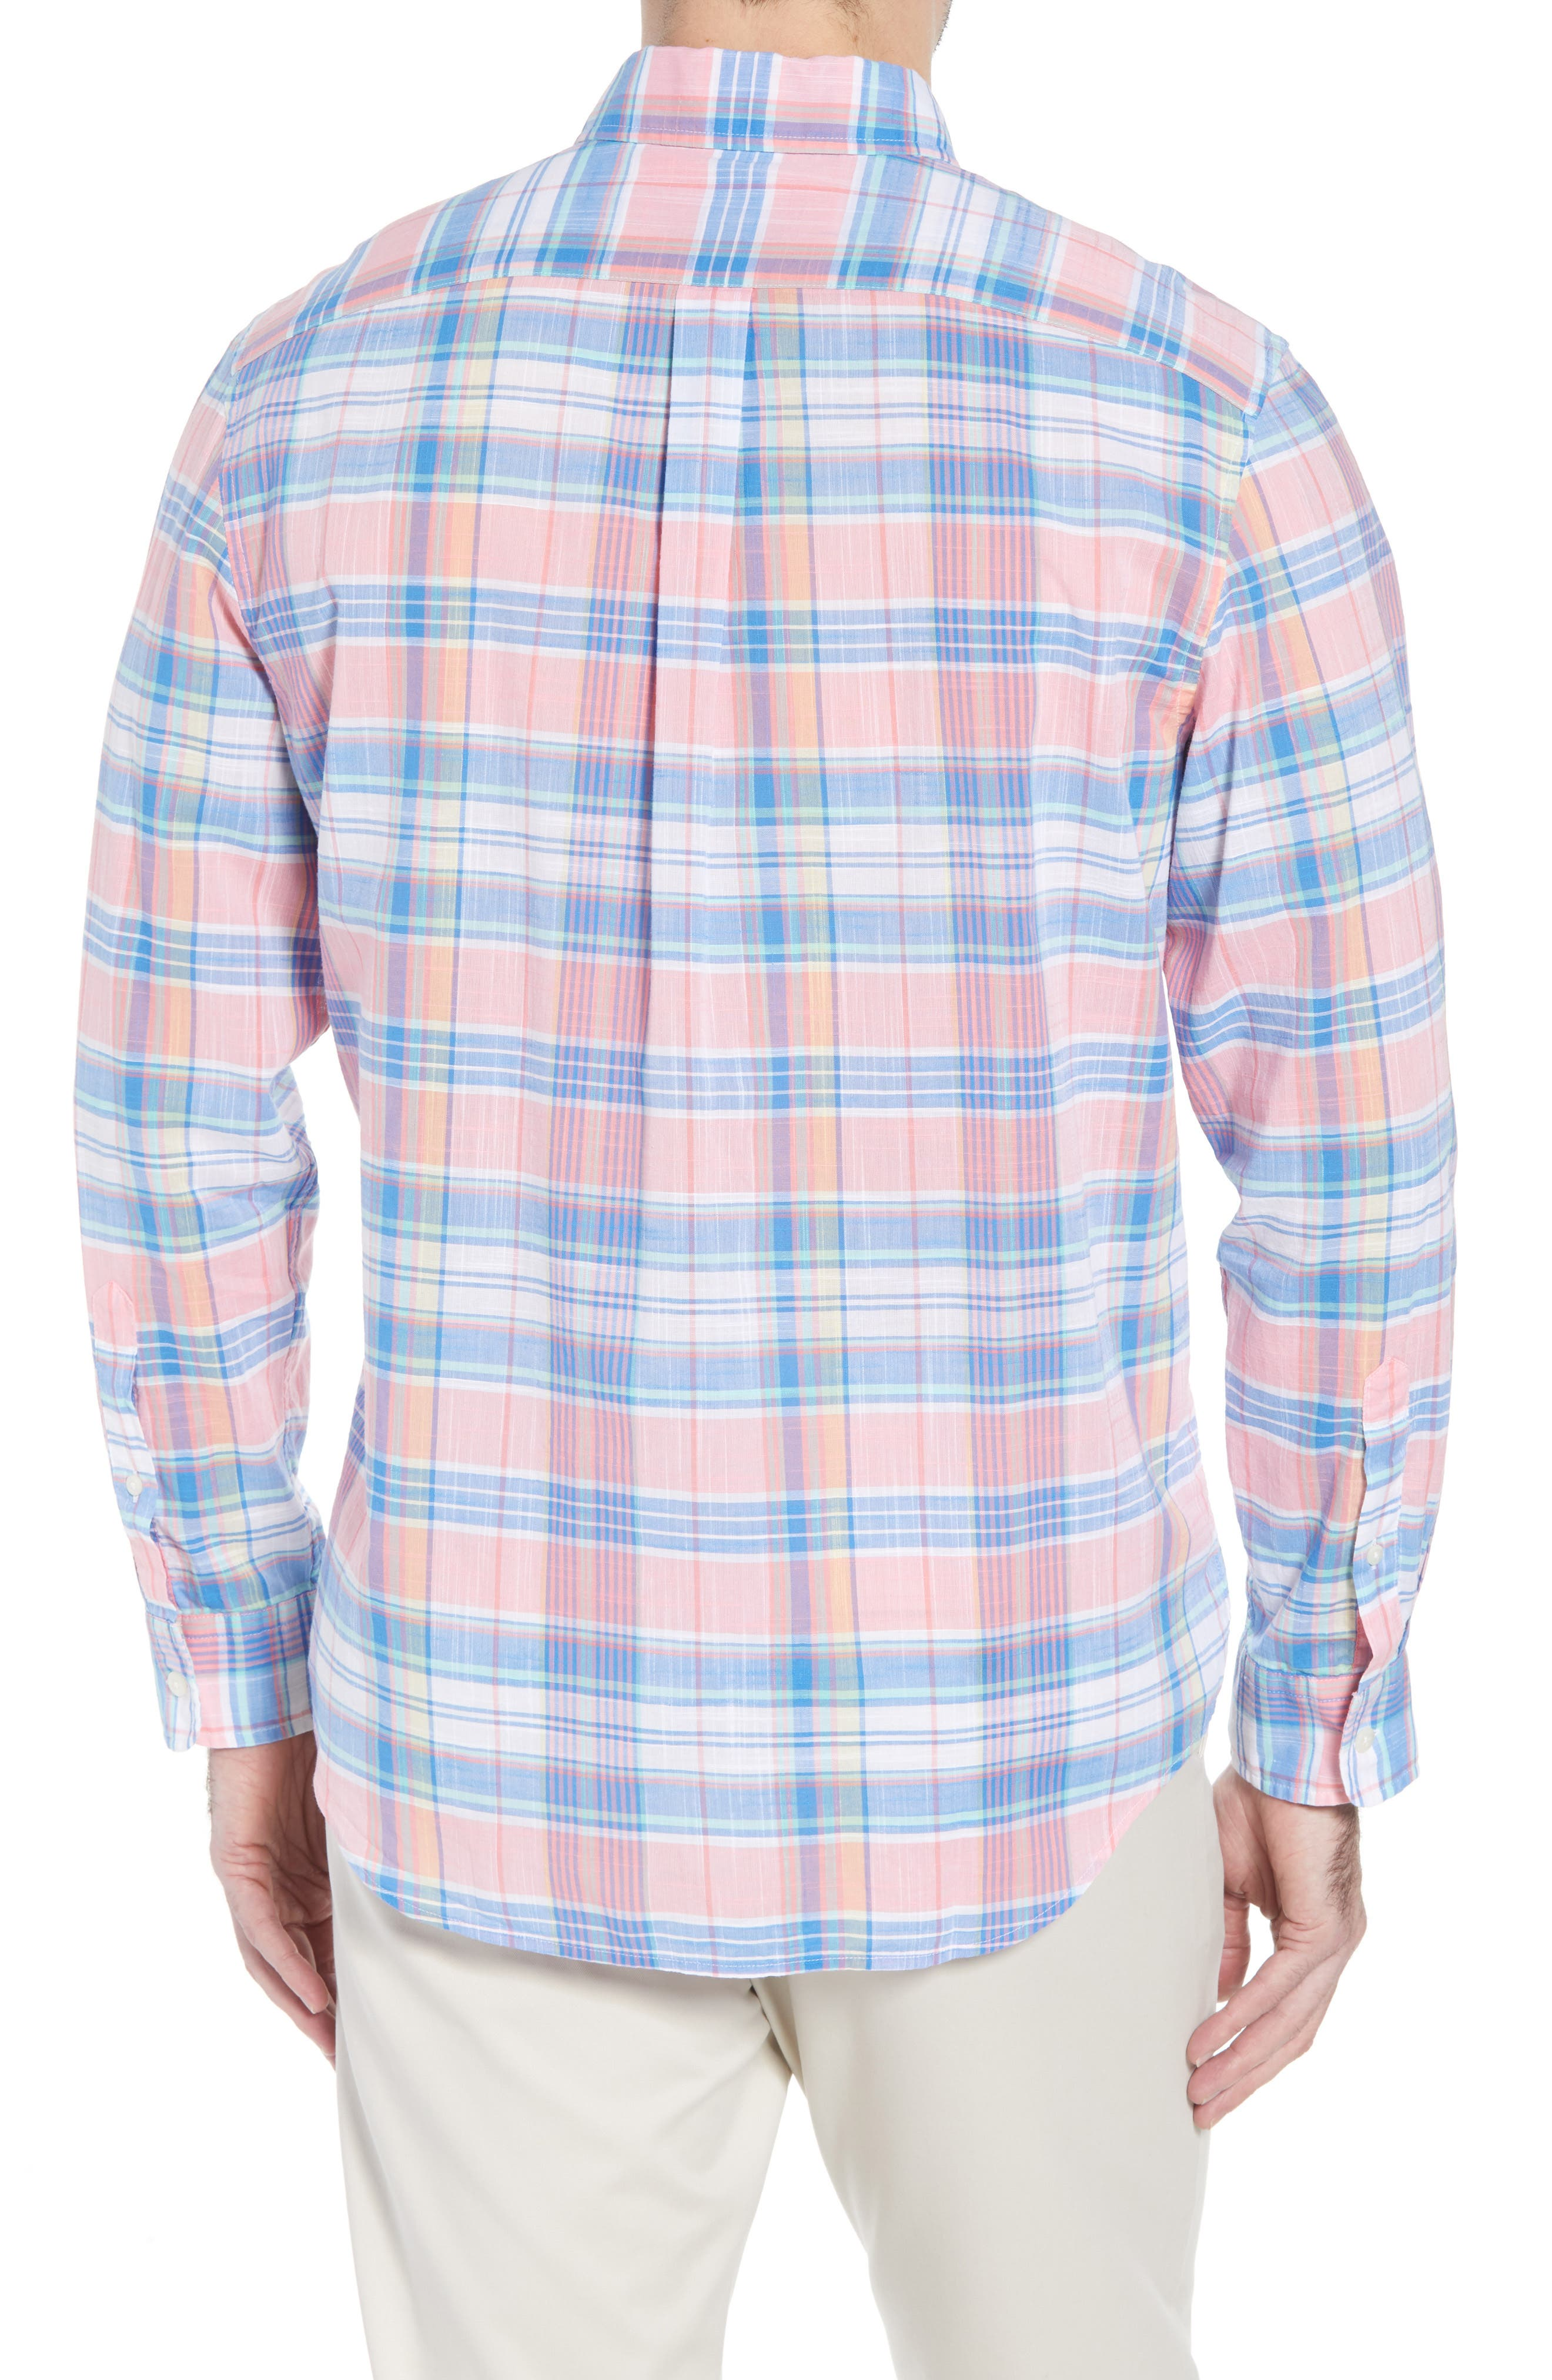 Smith Point Tucker Classic Fit Plaid Sport Shirt,                             Alternate thumbnail 3, color,                             Washed Neon Pink